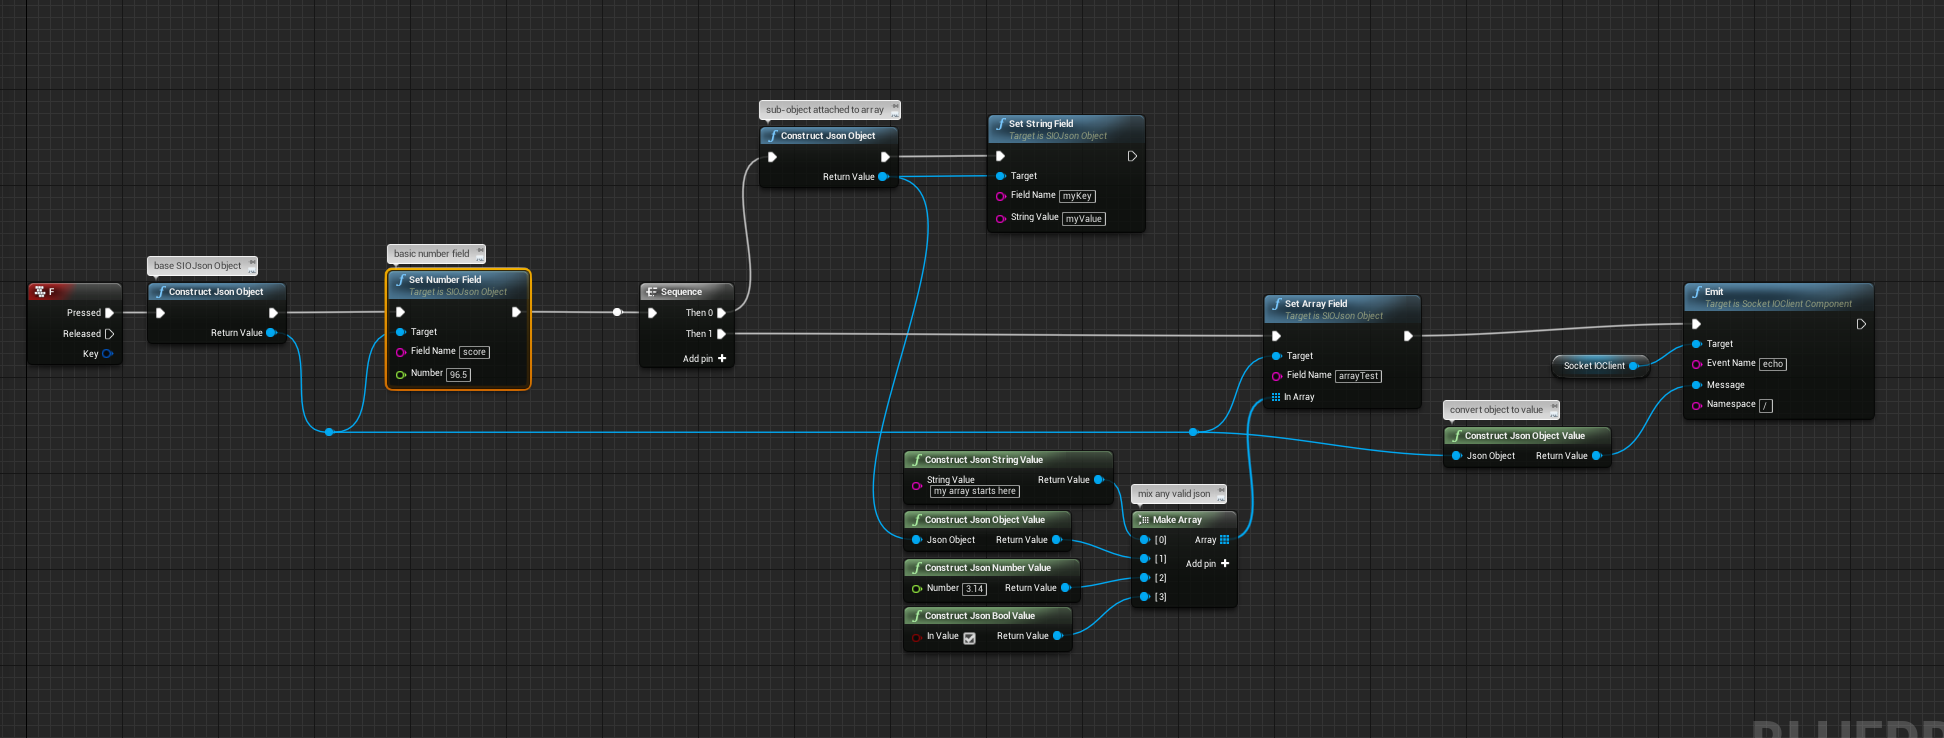 Github getnamosocketio client ue4 socket client plugin for img malvernweather Image collections